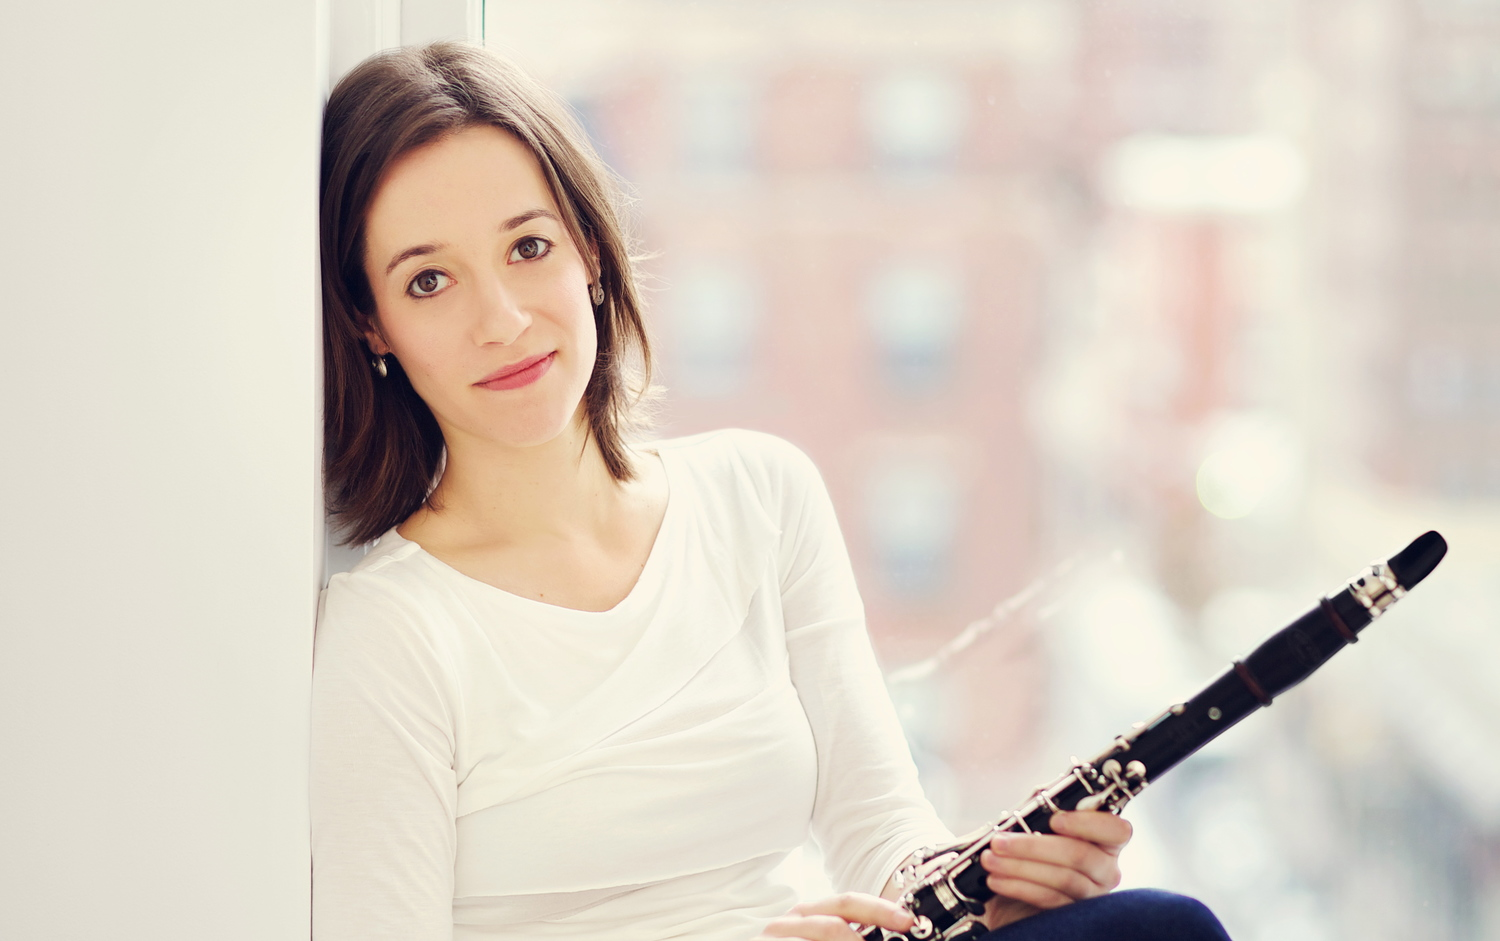 Clarinetist Romie de Guise-Langlois, performing on WITHOUT WORDS, April 14 & 15.